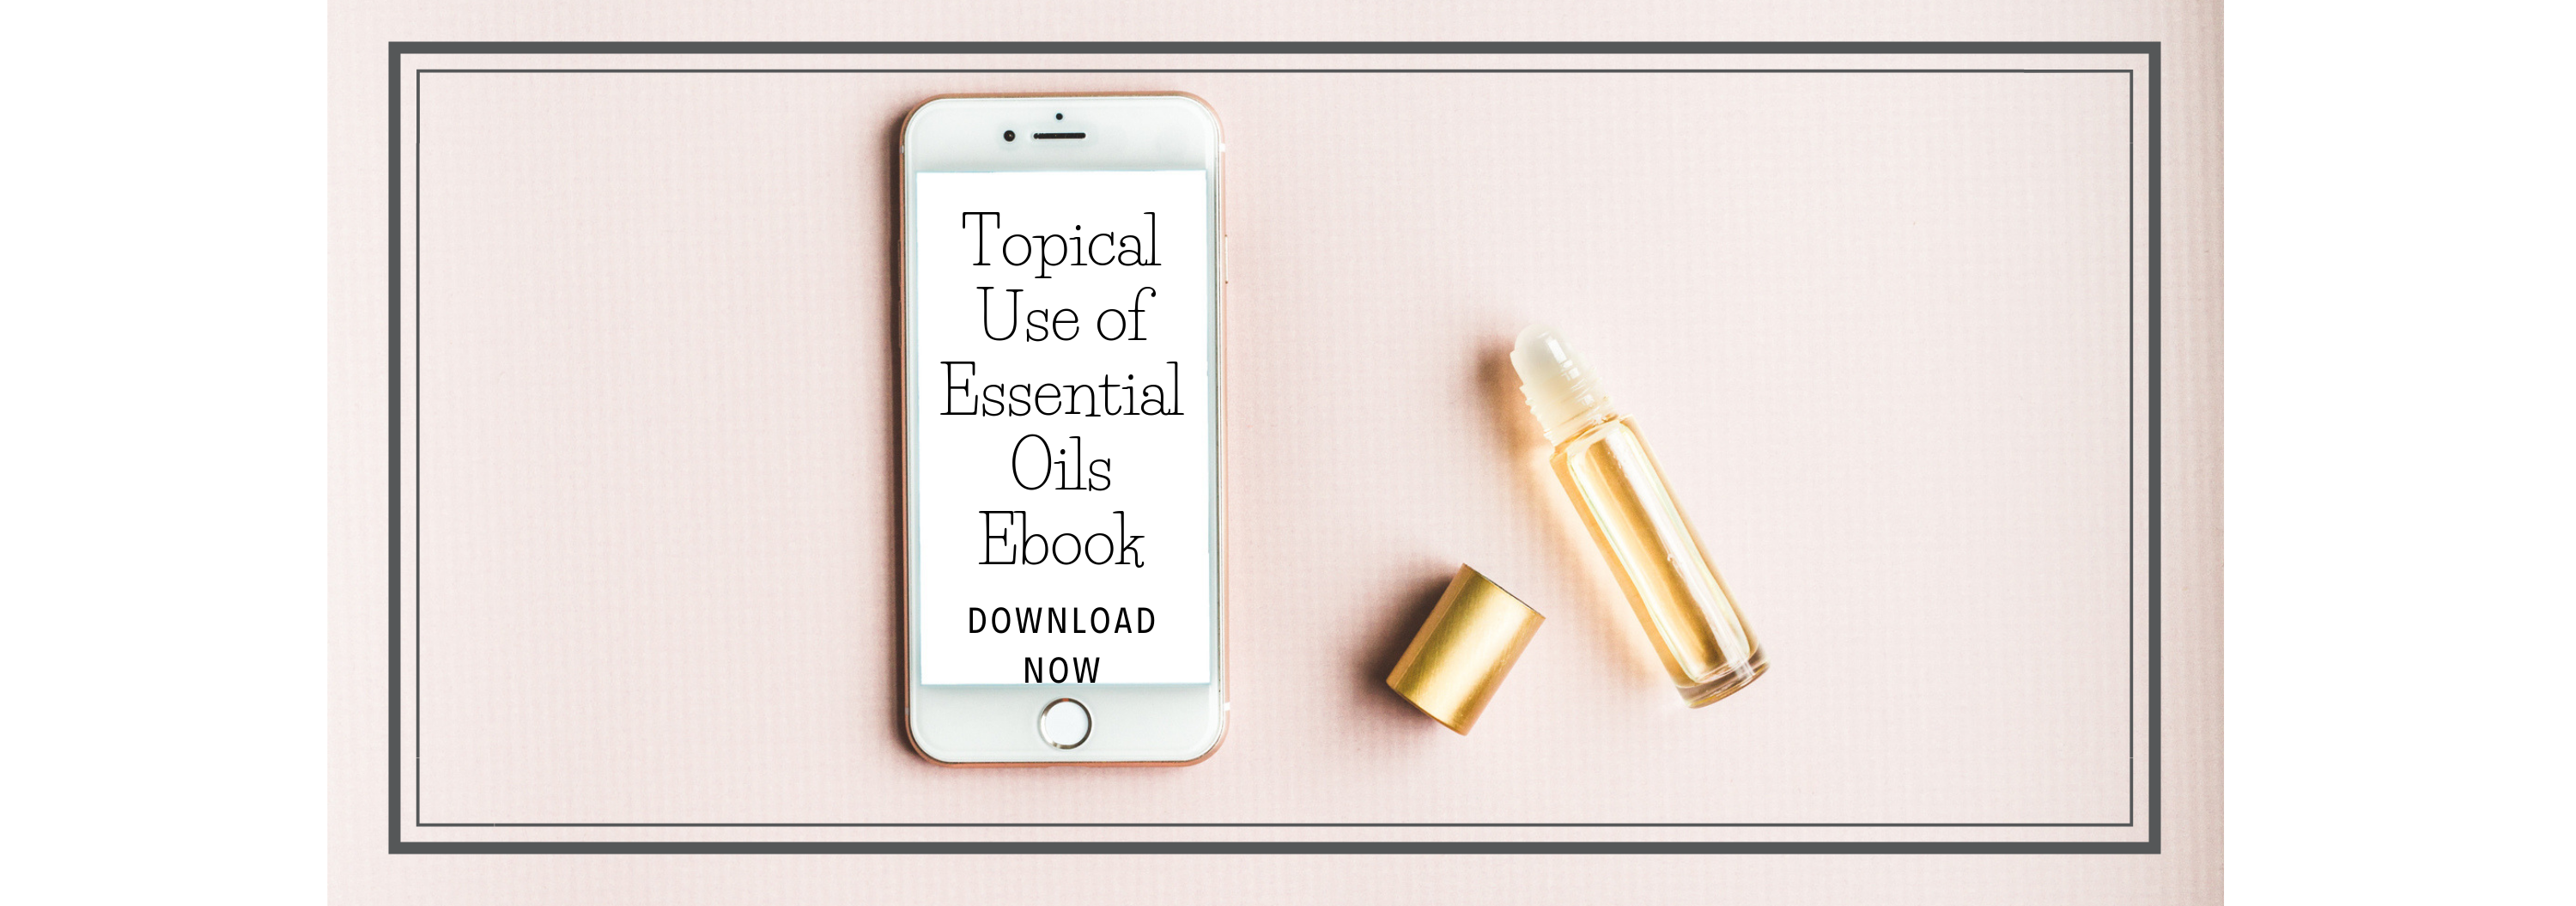 Topical use of essential oils ebook